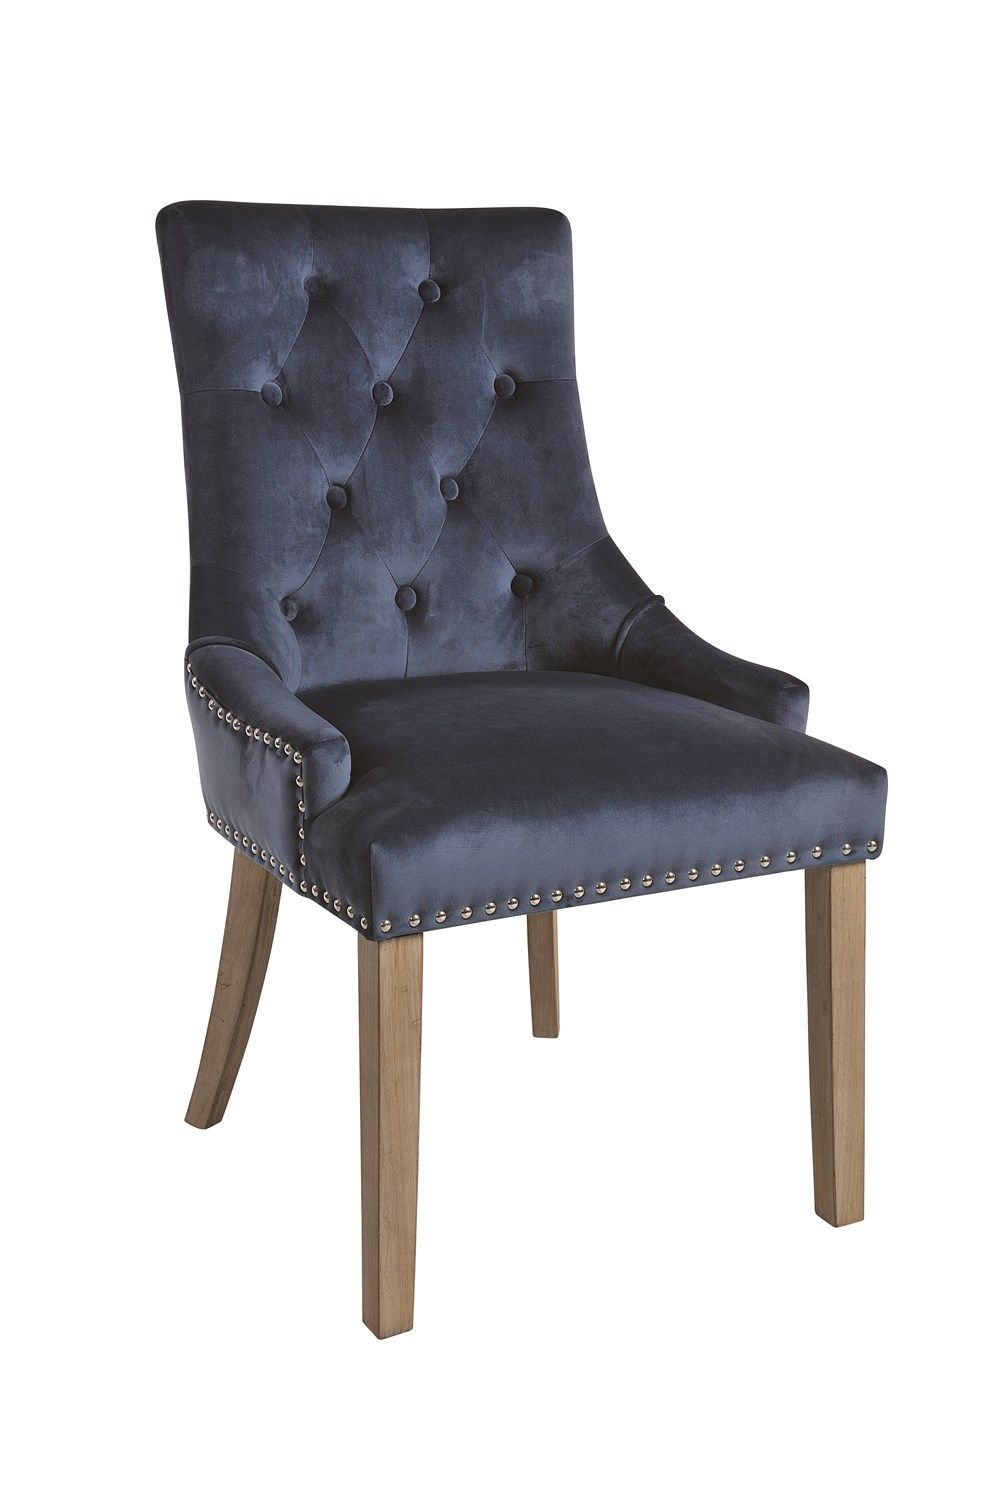 VICKY CHAIR Prussian Blue Upholstered Chair with Vintage Legs